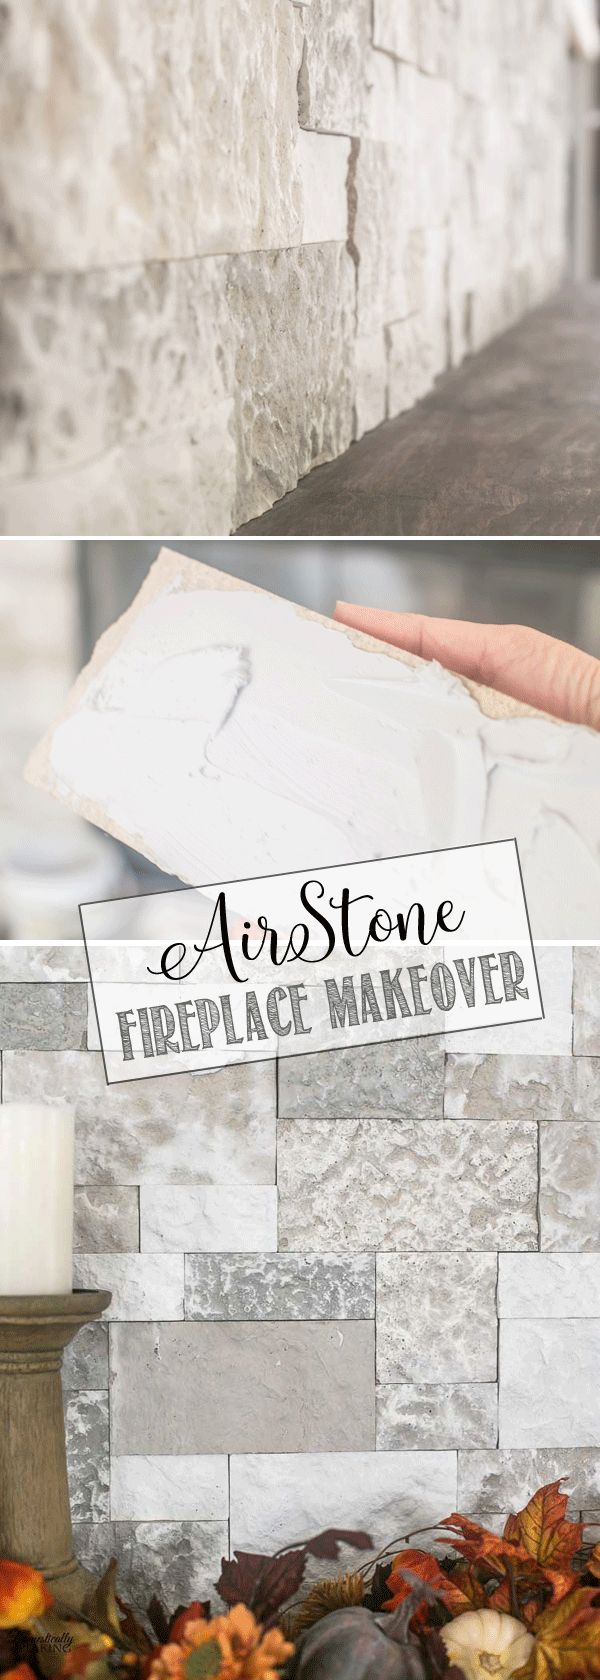 the 25 best airstone fireplace ideas on pinterest airstone